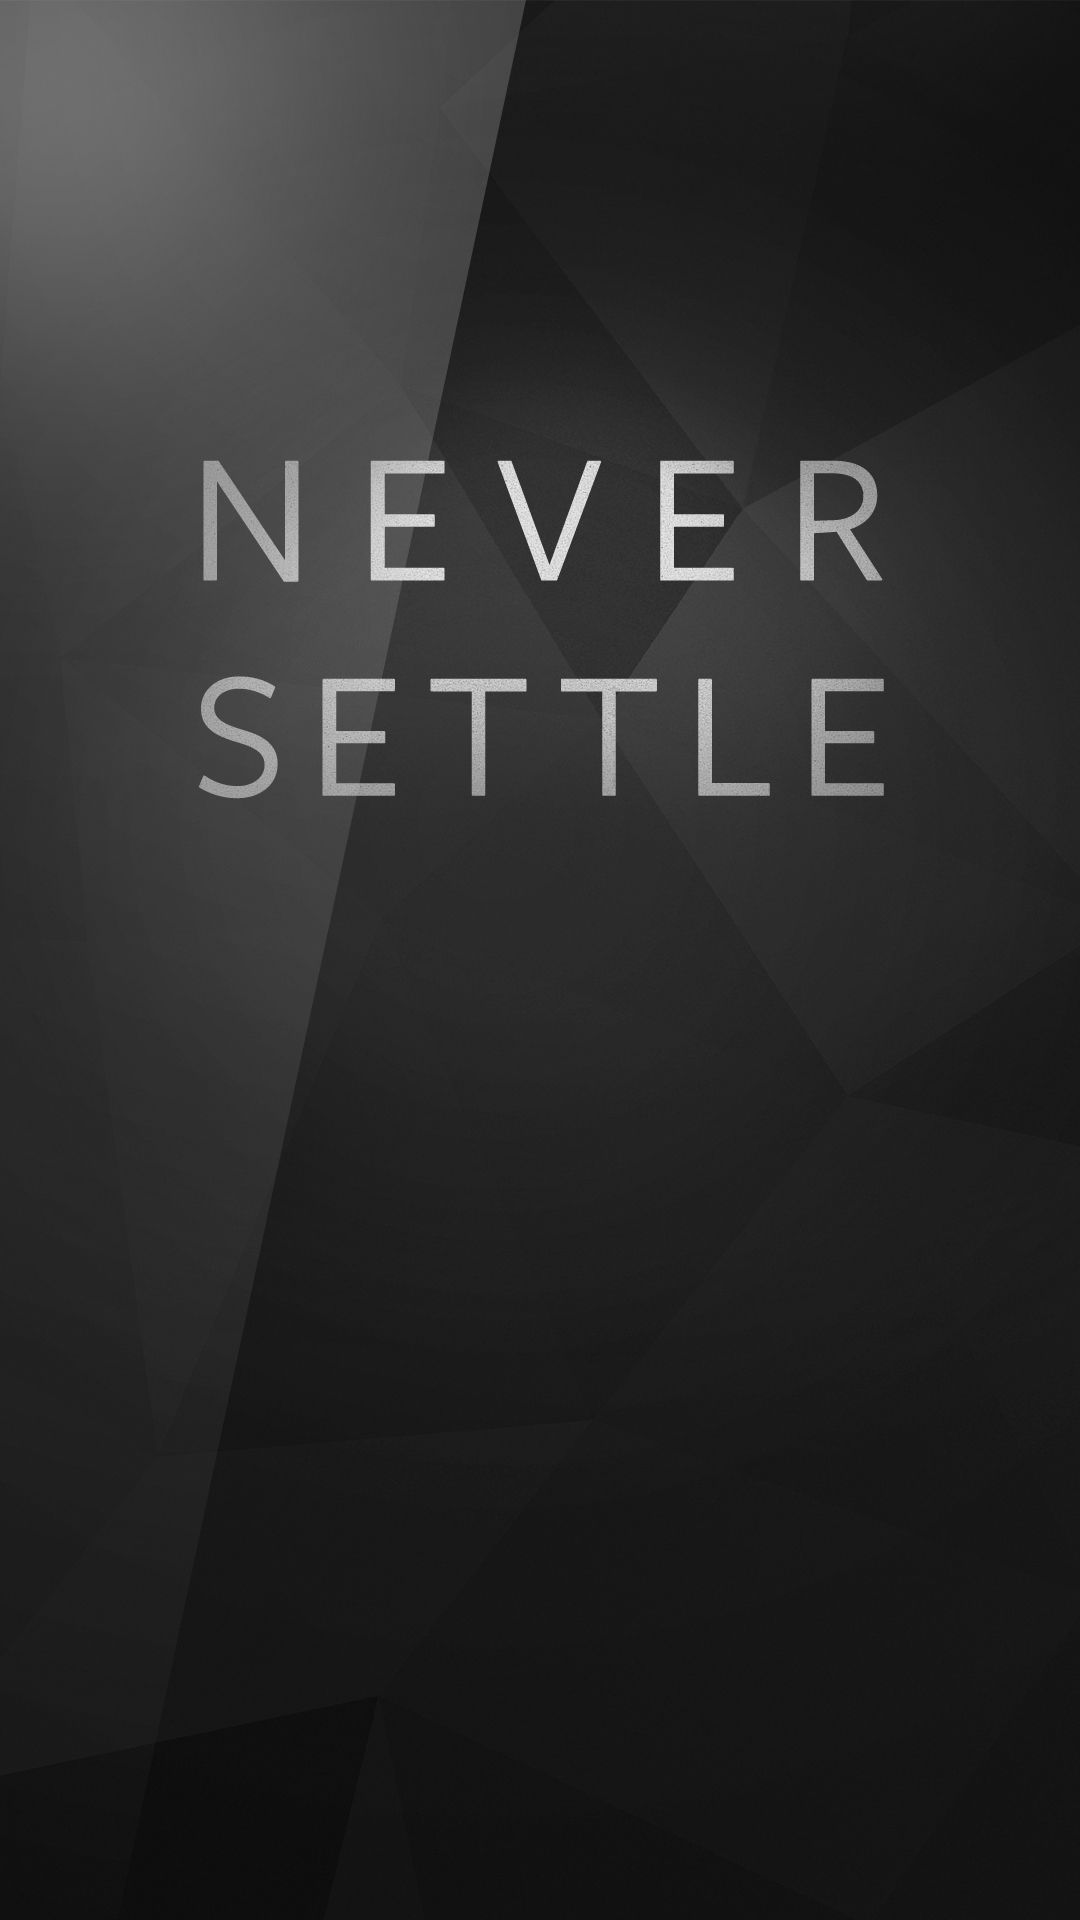 97 Oneplus Logo Wallpapers On Wallpapersafari